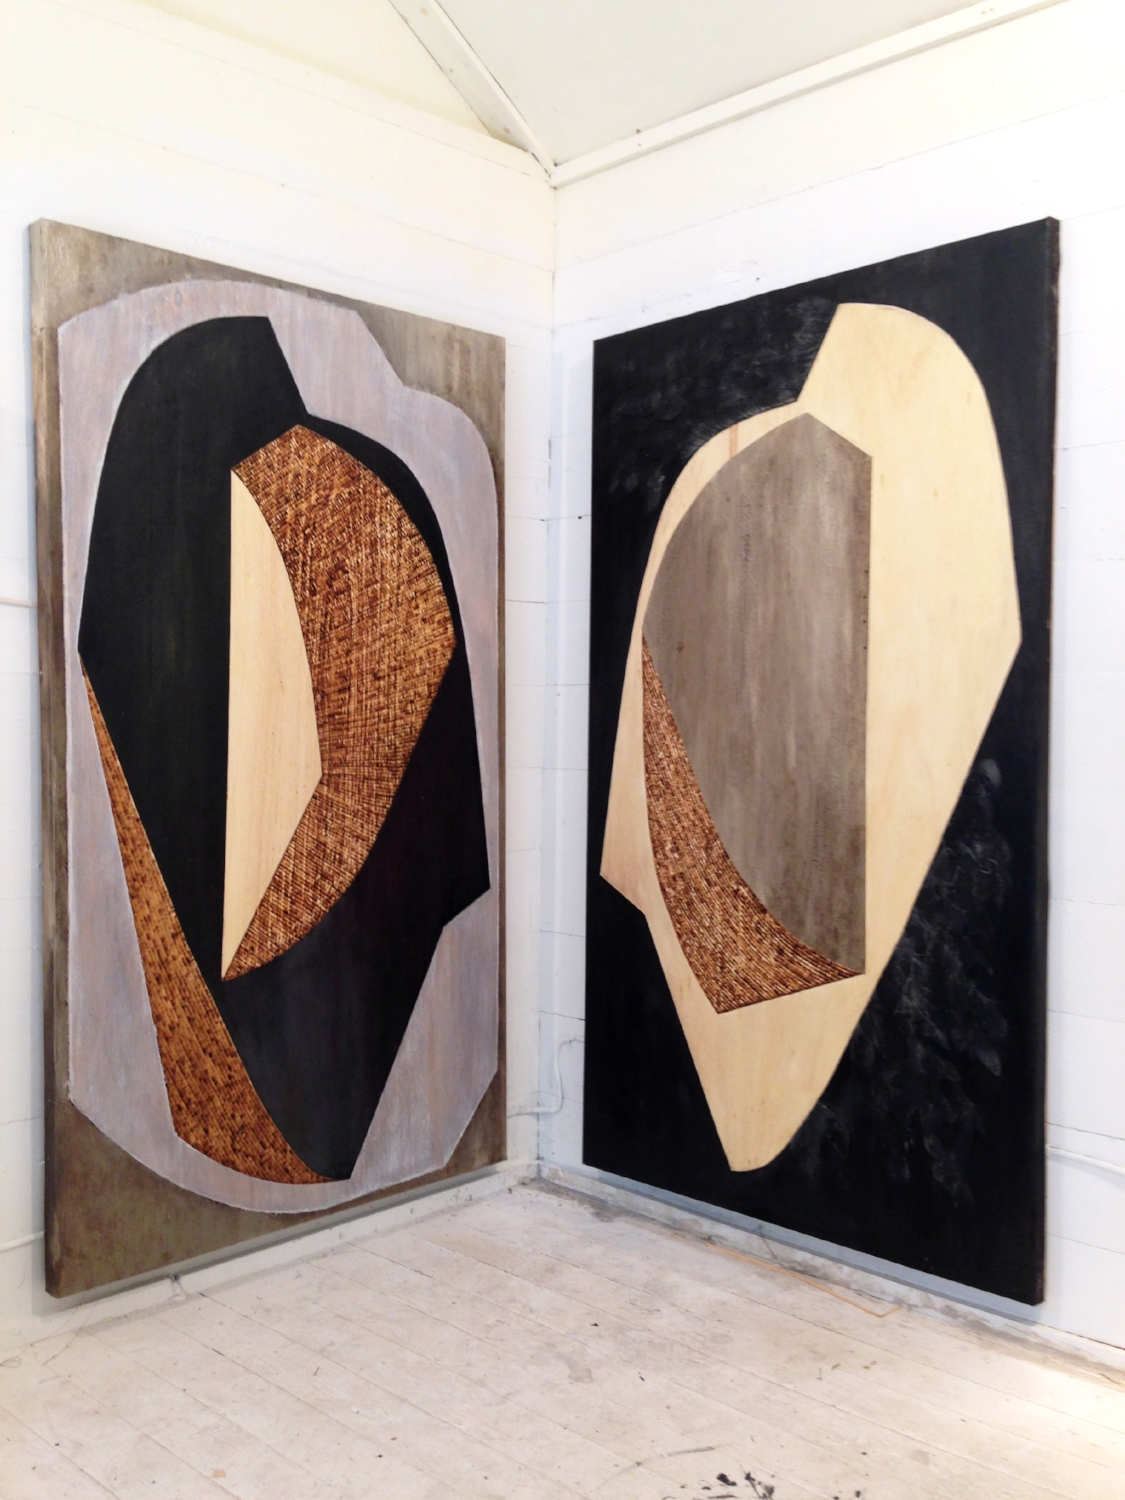 2015  Two Truths in the Same House  Tarpaper, enamel paint, and wood burning on birch panel.